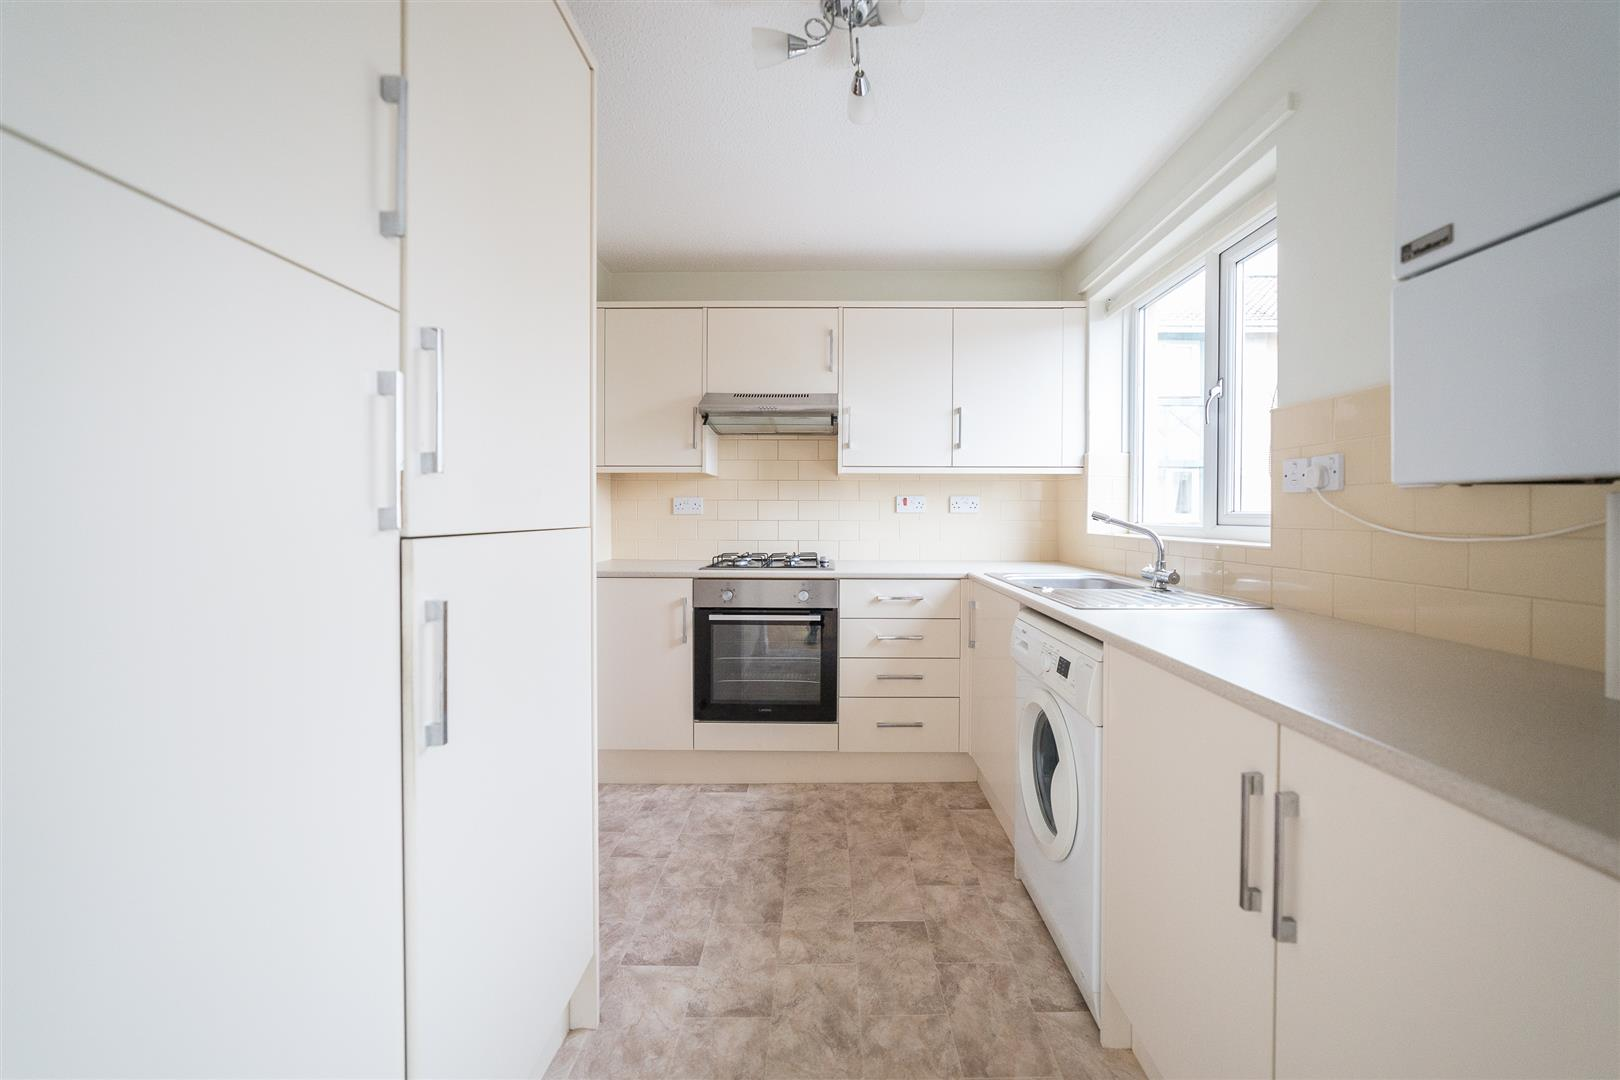 2 bed apartment to rent in Newcastle Upon Tyne, NE5 4LF 2